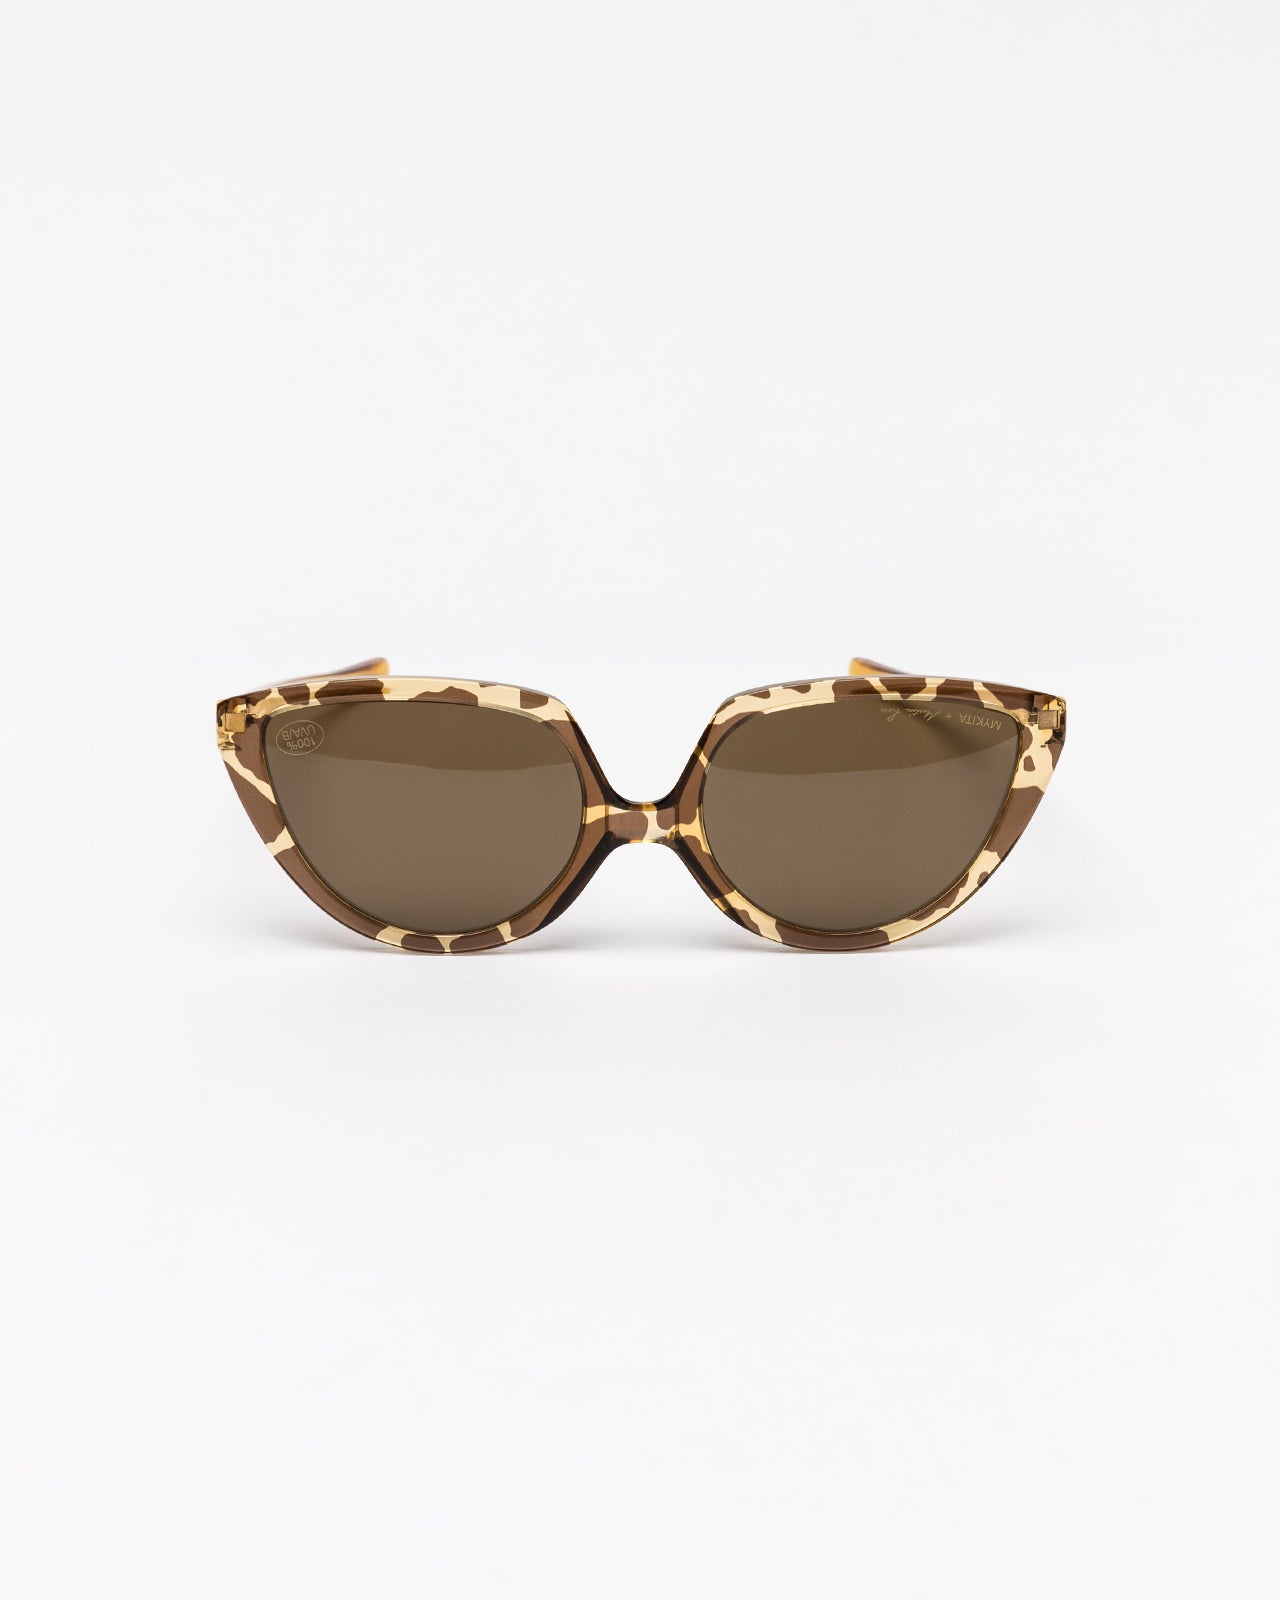 Mykita x Martine Rose Raw Brown Solid in Honey Giraffe